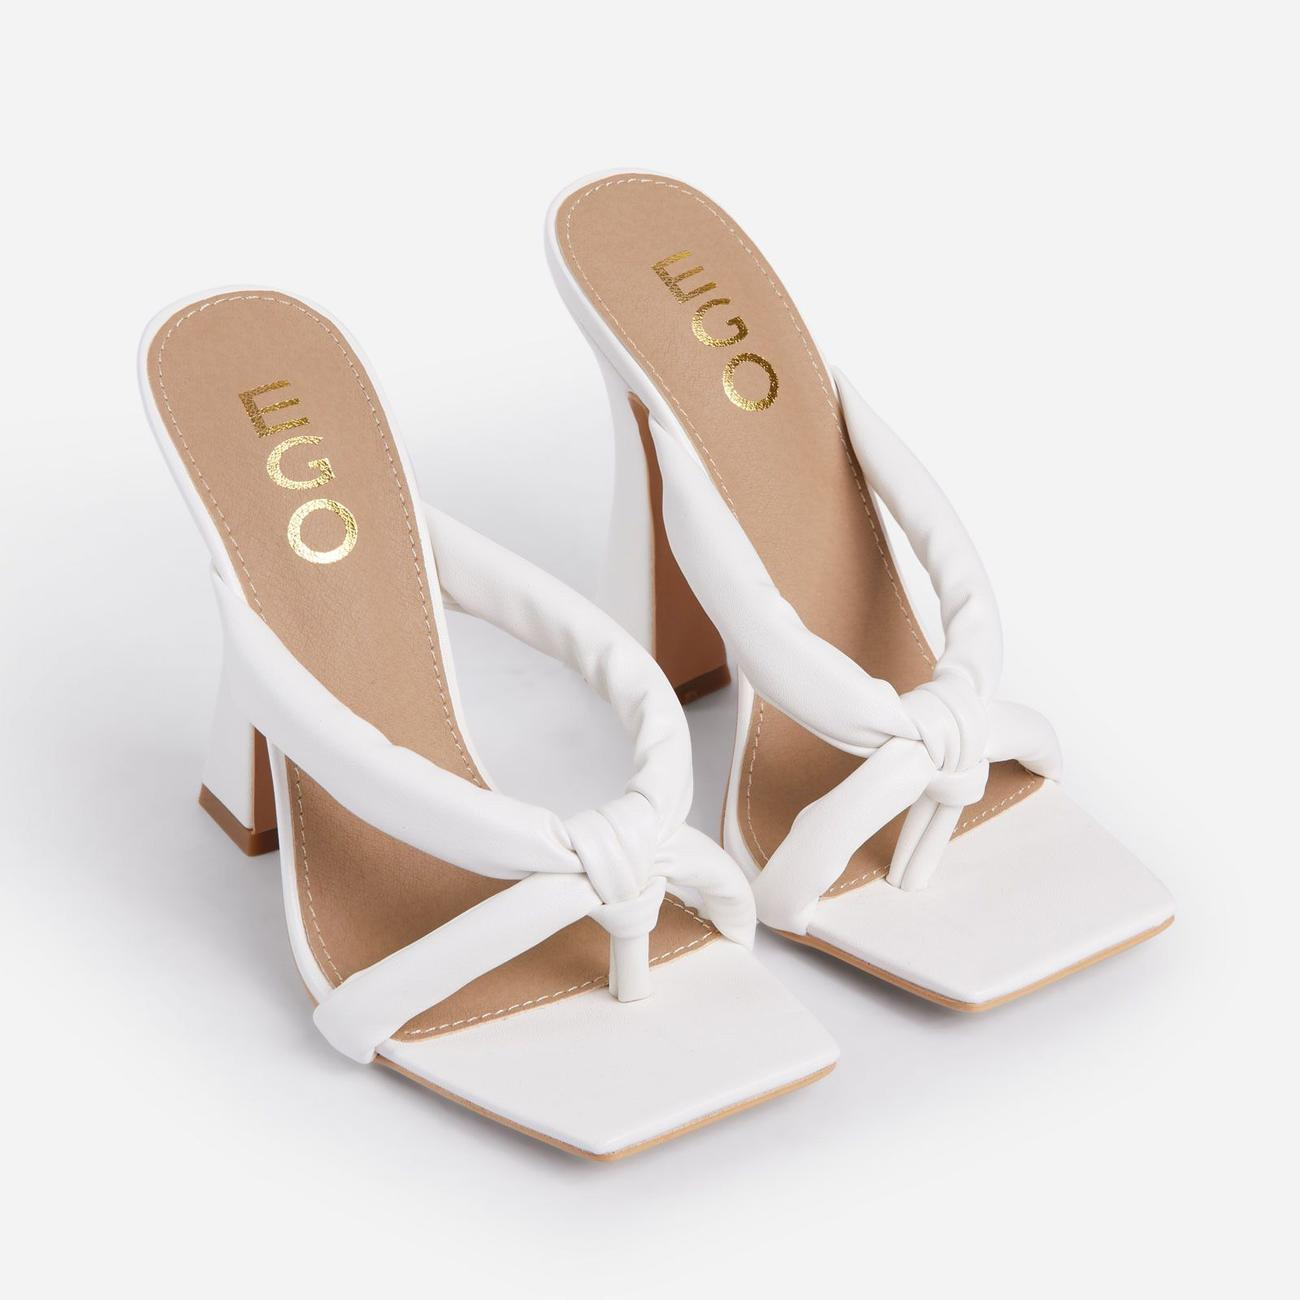 Loyal Padded Cross Strap Square Toe Heel Mule In White Faux Leather Image 4